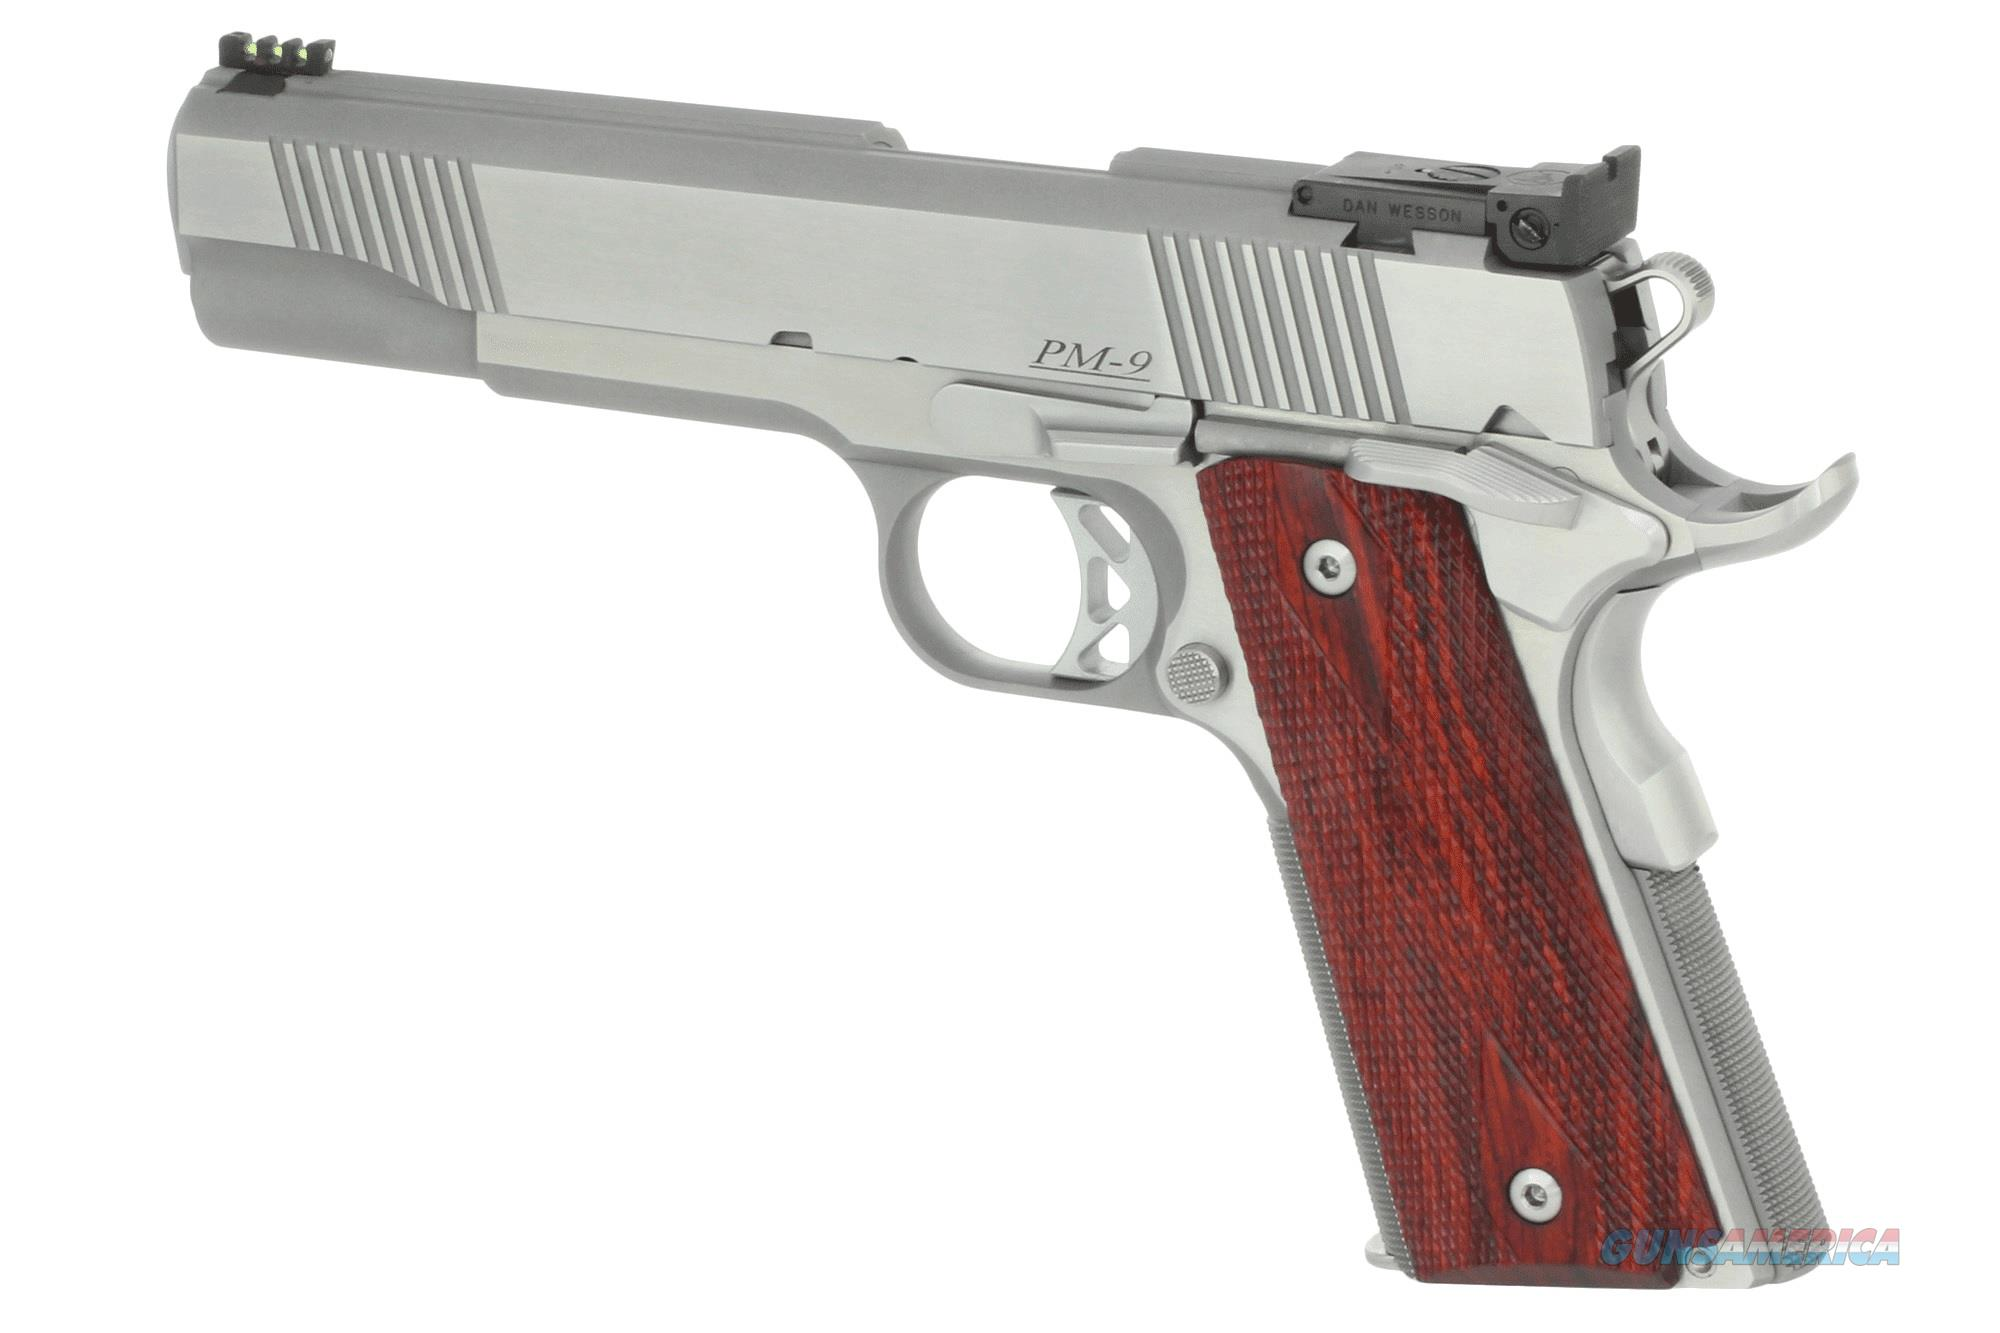 CZ-USA Dan Wesson Pointman Nine PM-9 9mm 01909   Guns > Pistols > Dan Wesson Pistols/Revolvers > 1911 Style